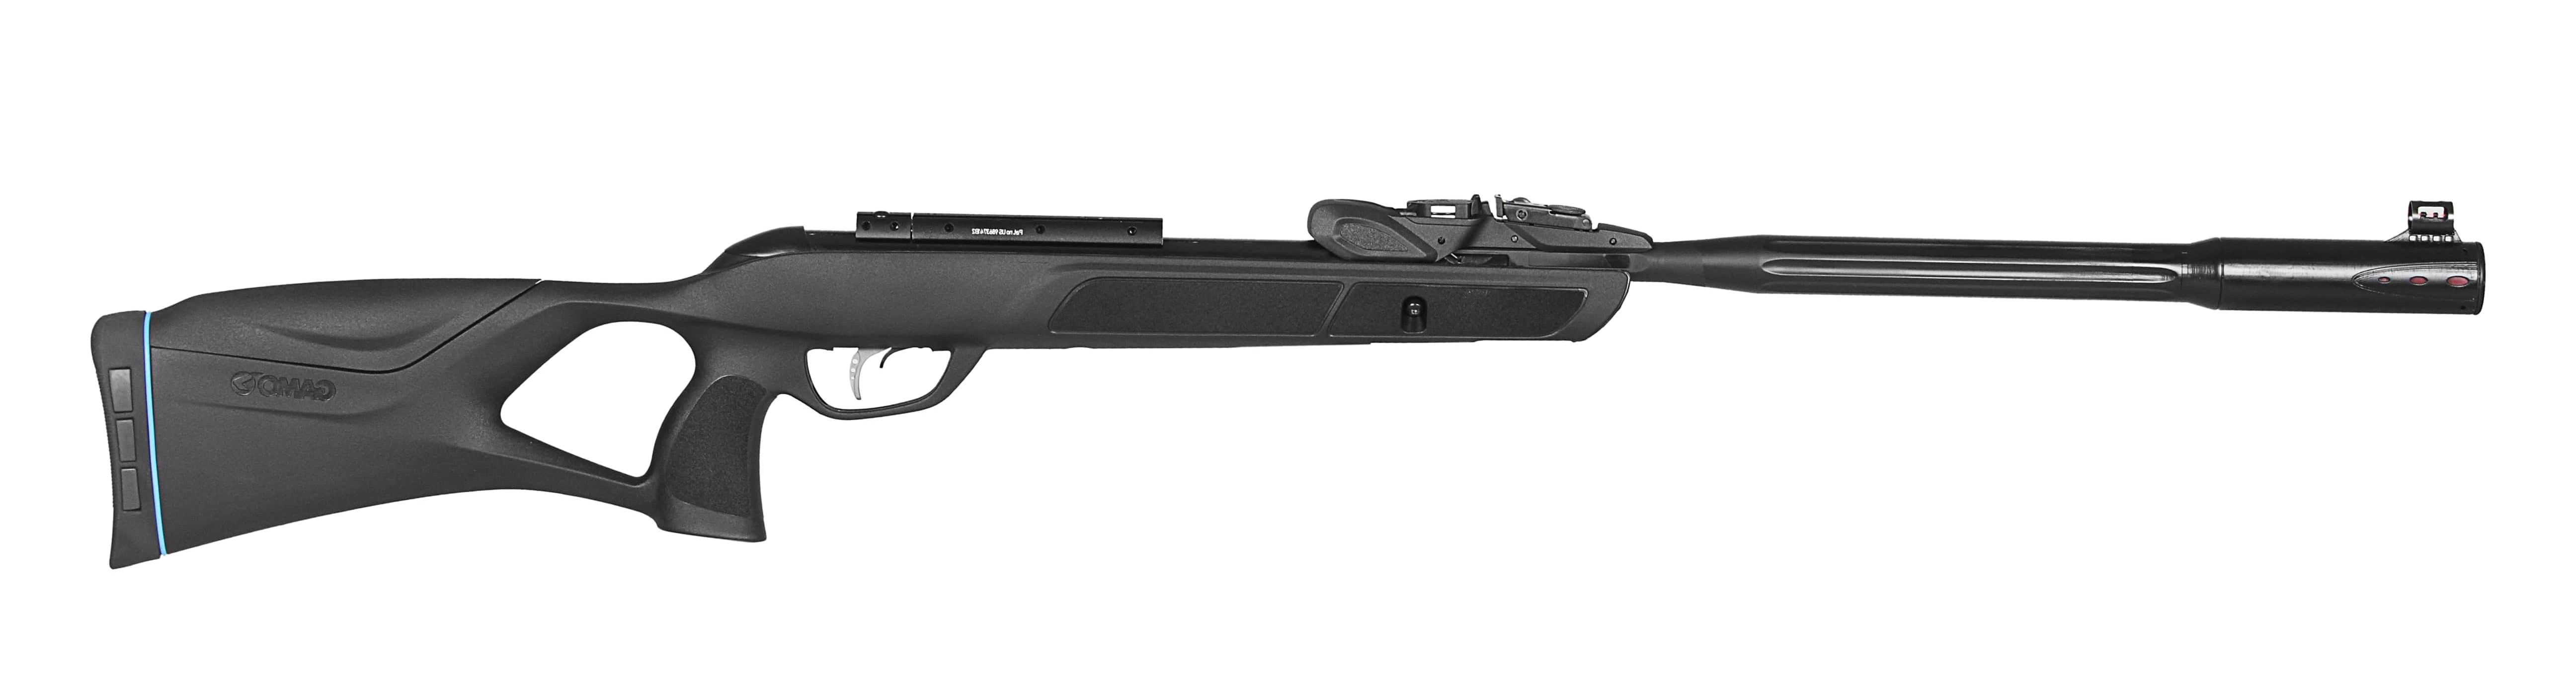 Gamo Replay 10 Roadster IGT 5.5